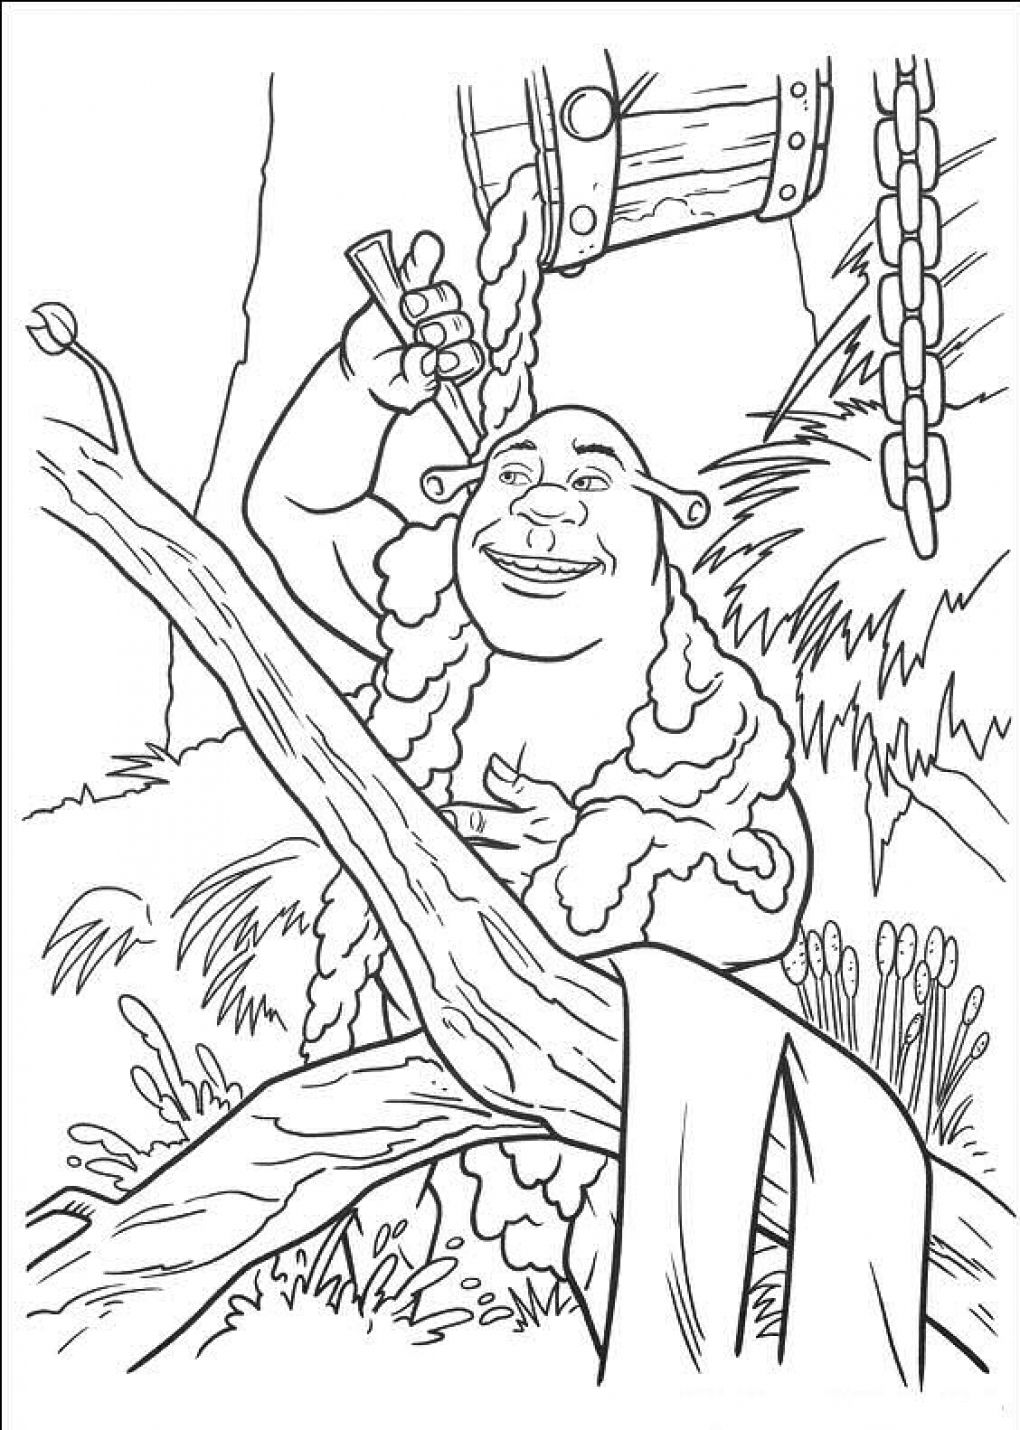 Free Shrek With Babies Coloring Pages, Download Free Clip Art ... | 1430x1020